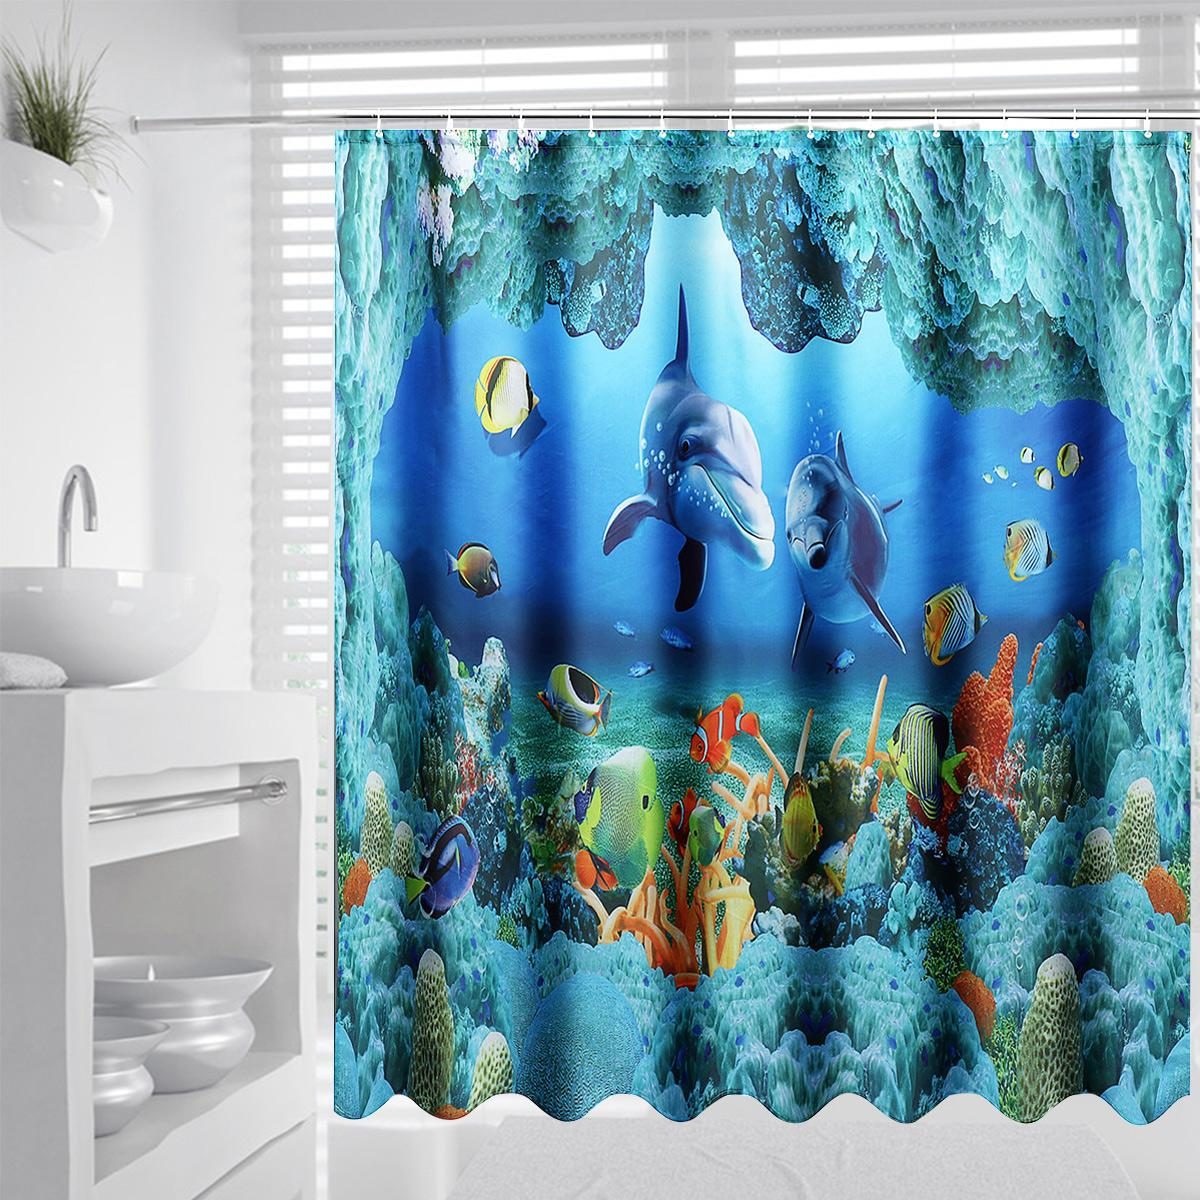 Global Collection 180x180cm Blue Ocean Dolphin Deep Sea Bathroom Shower Curtain Waterproof Set